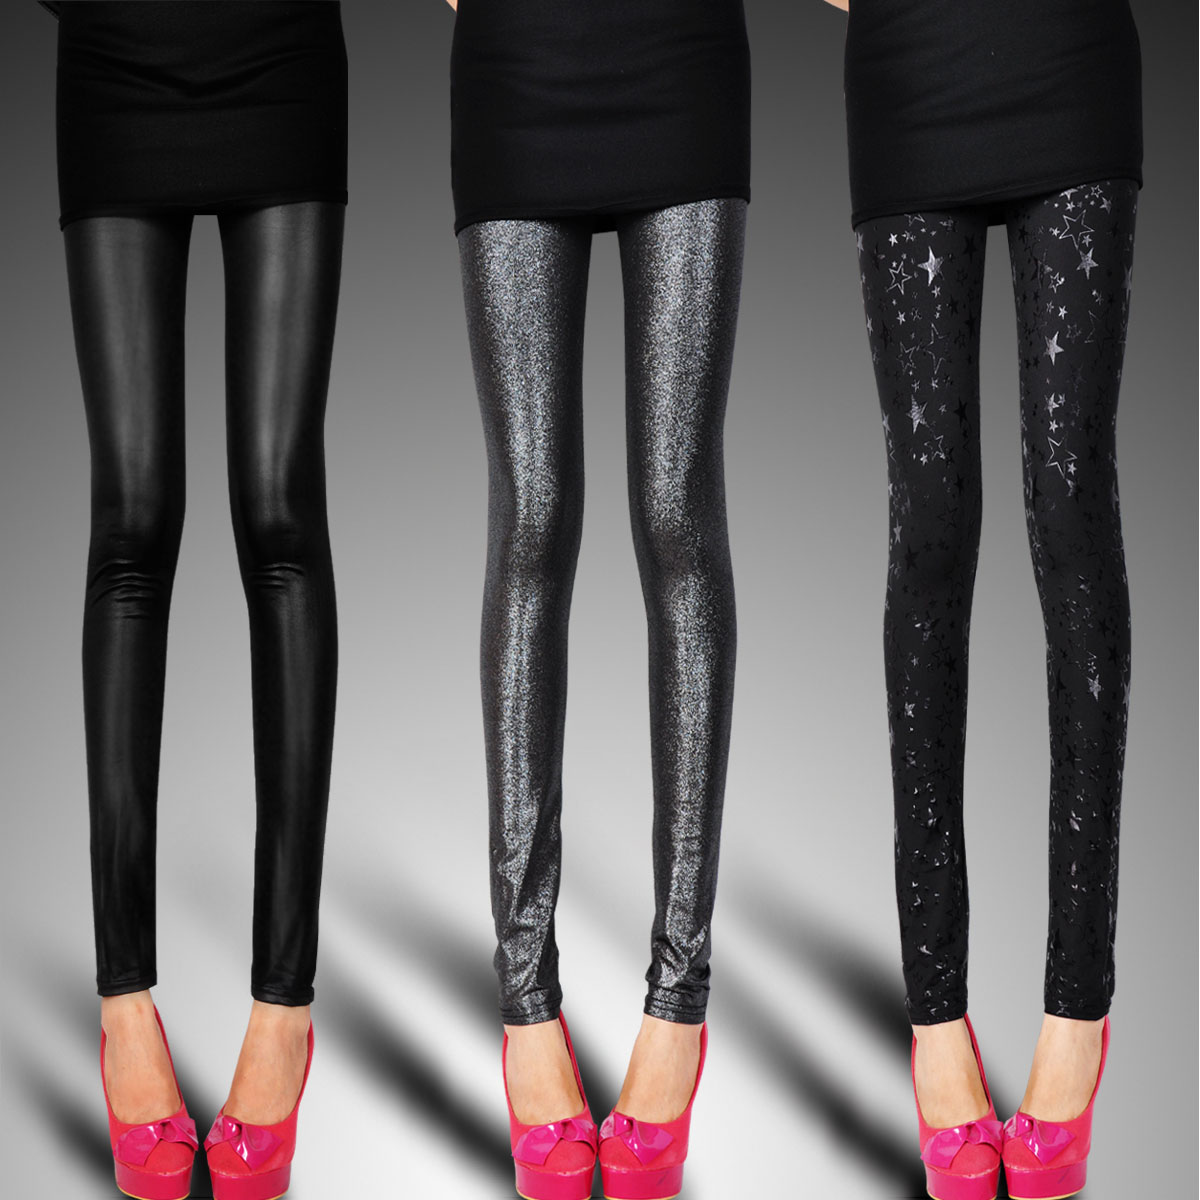 European and American spring and autumn style breathable Leggings with bright face and thin silver underpants leopard print tight womens Pants Black Matte